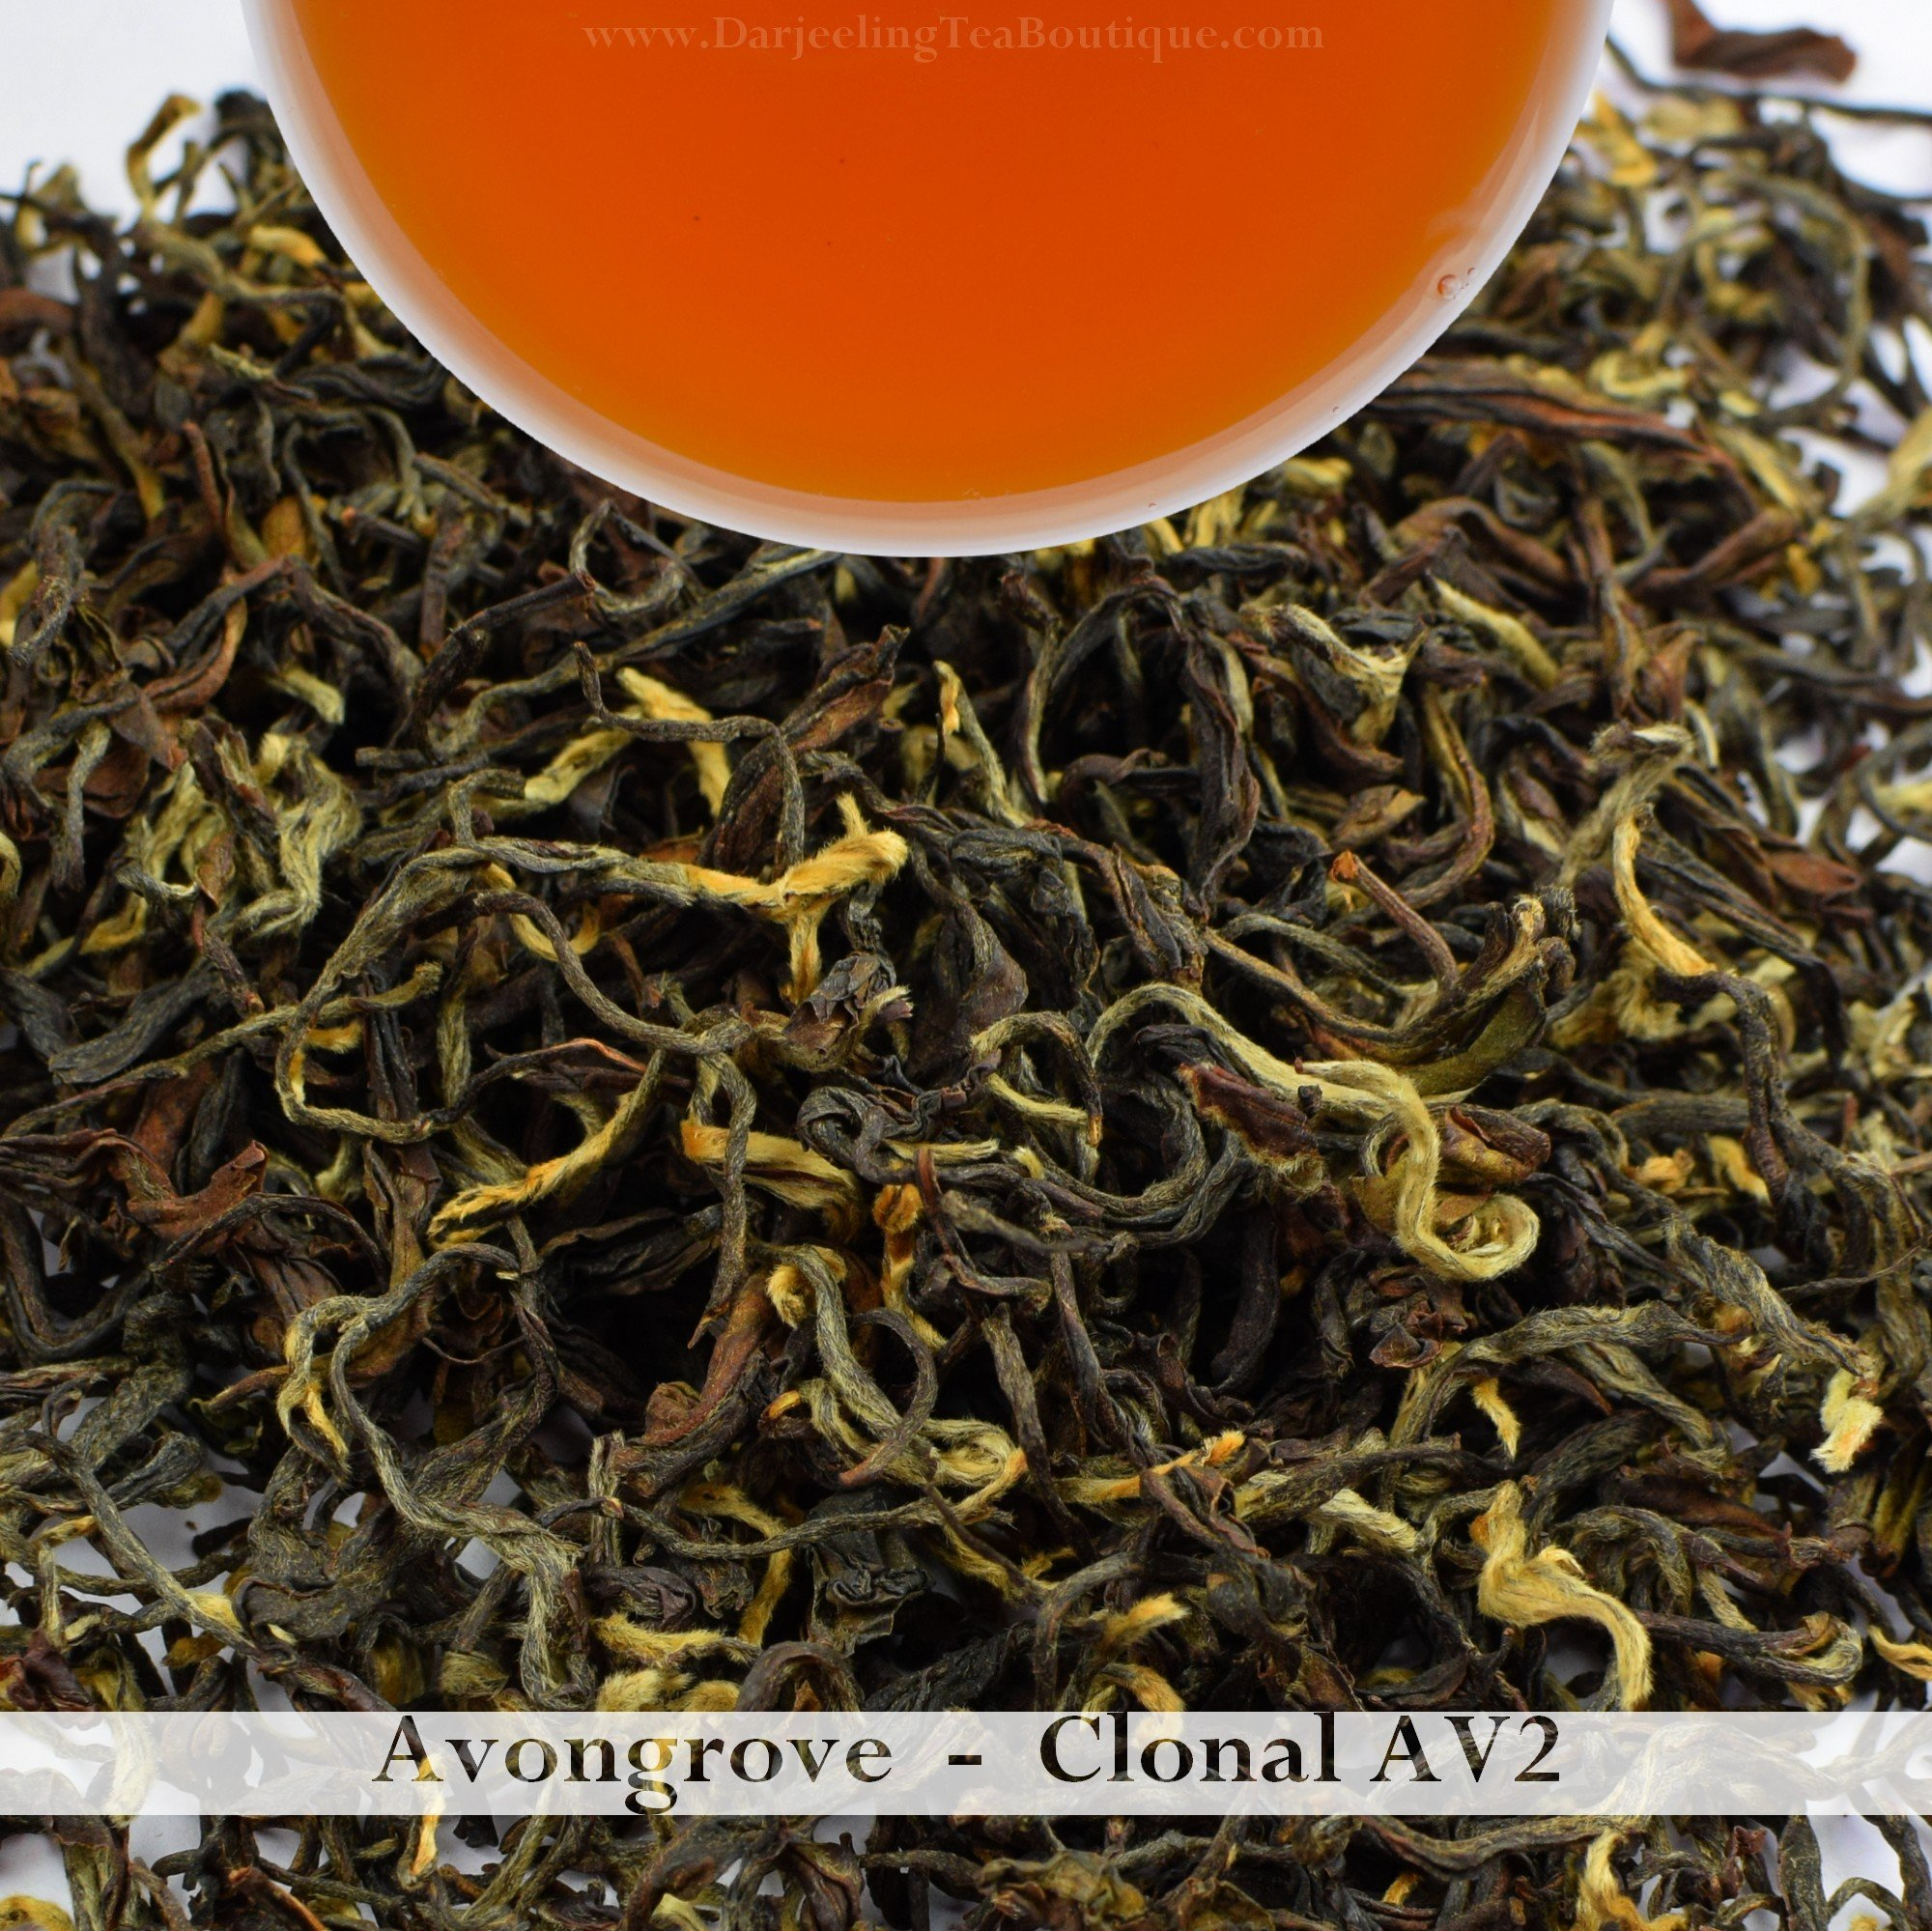 2017 AV2 Cultivar | Darjeeling 2nd Flush Tea | 500gm (17.63oz) | Pure Oragnic Tea from Avongrove | Bulk Wholesale Pack | Darjeeling Tea Boutique